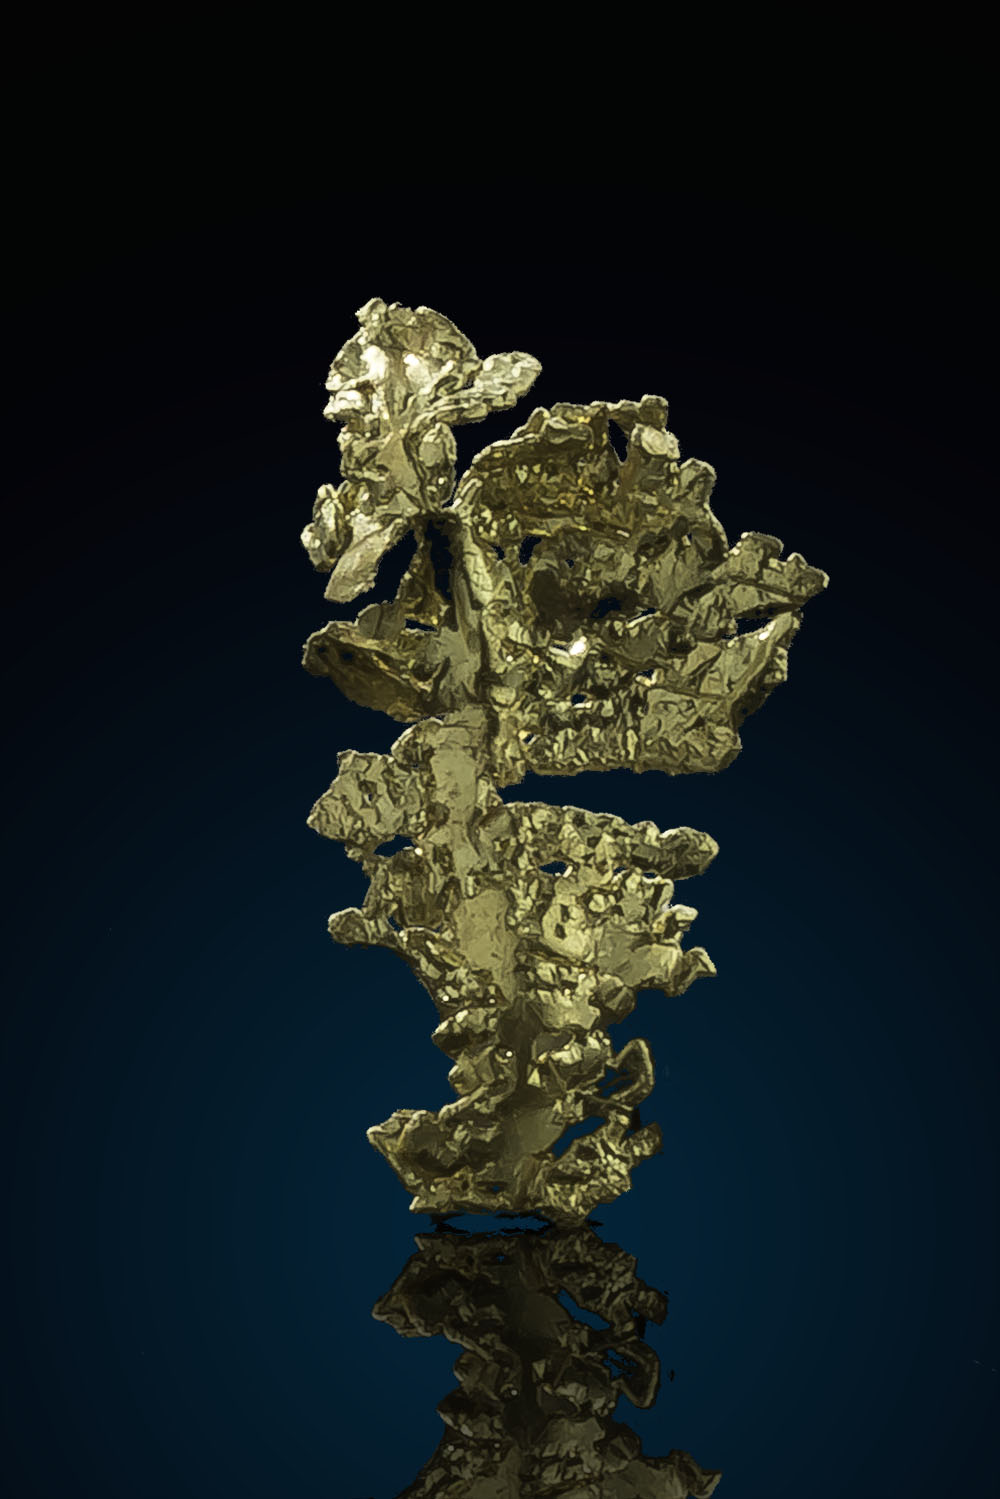 Natural Leaf Gold Crystal - Eagles Nest Gold Mine